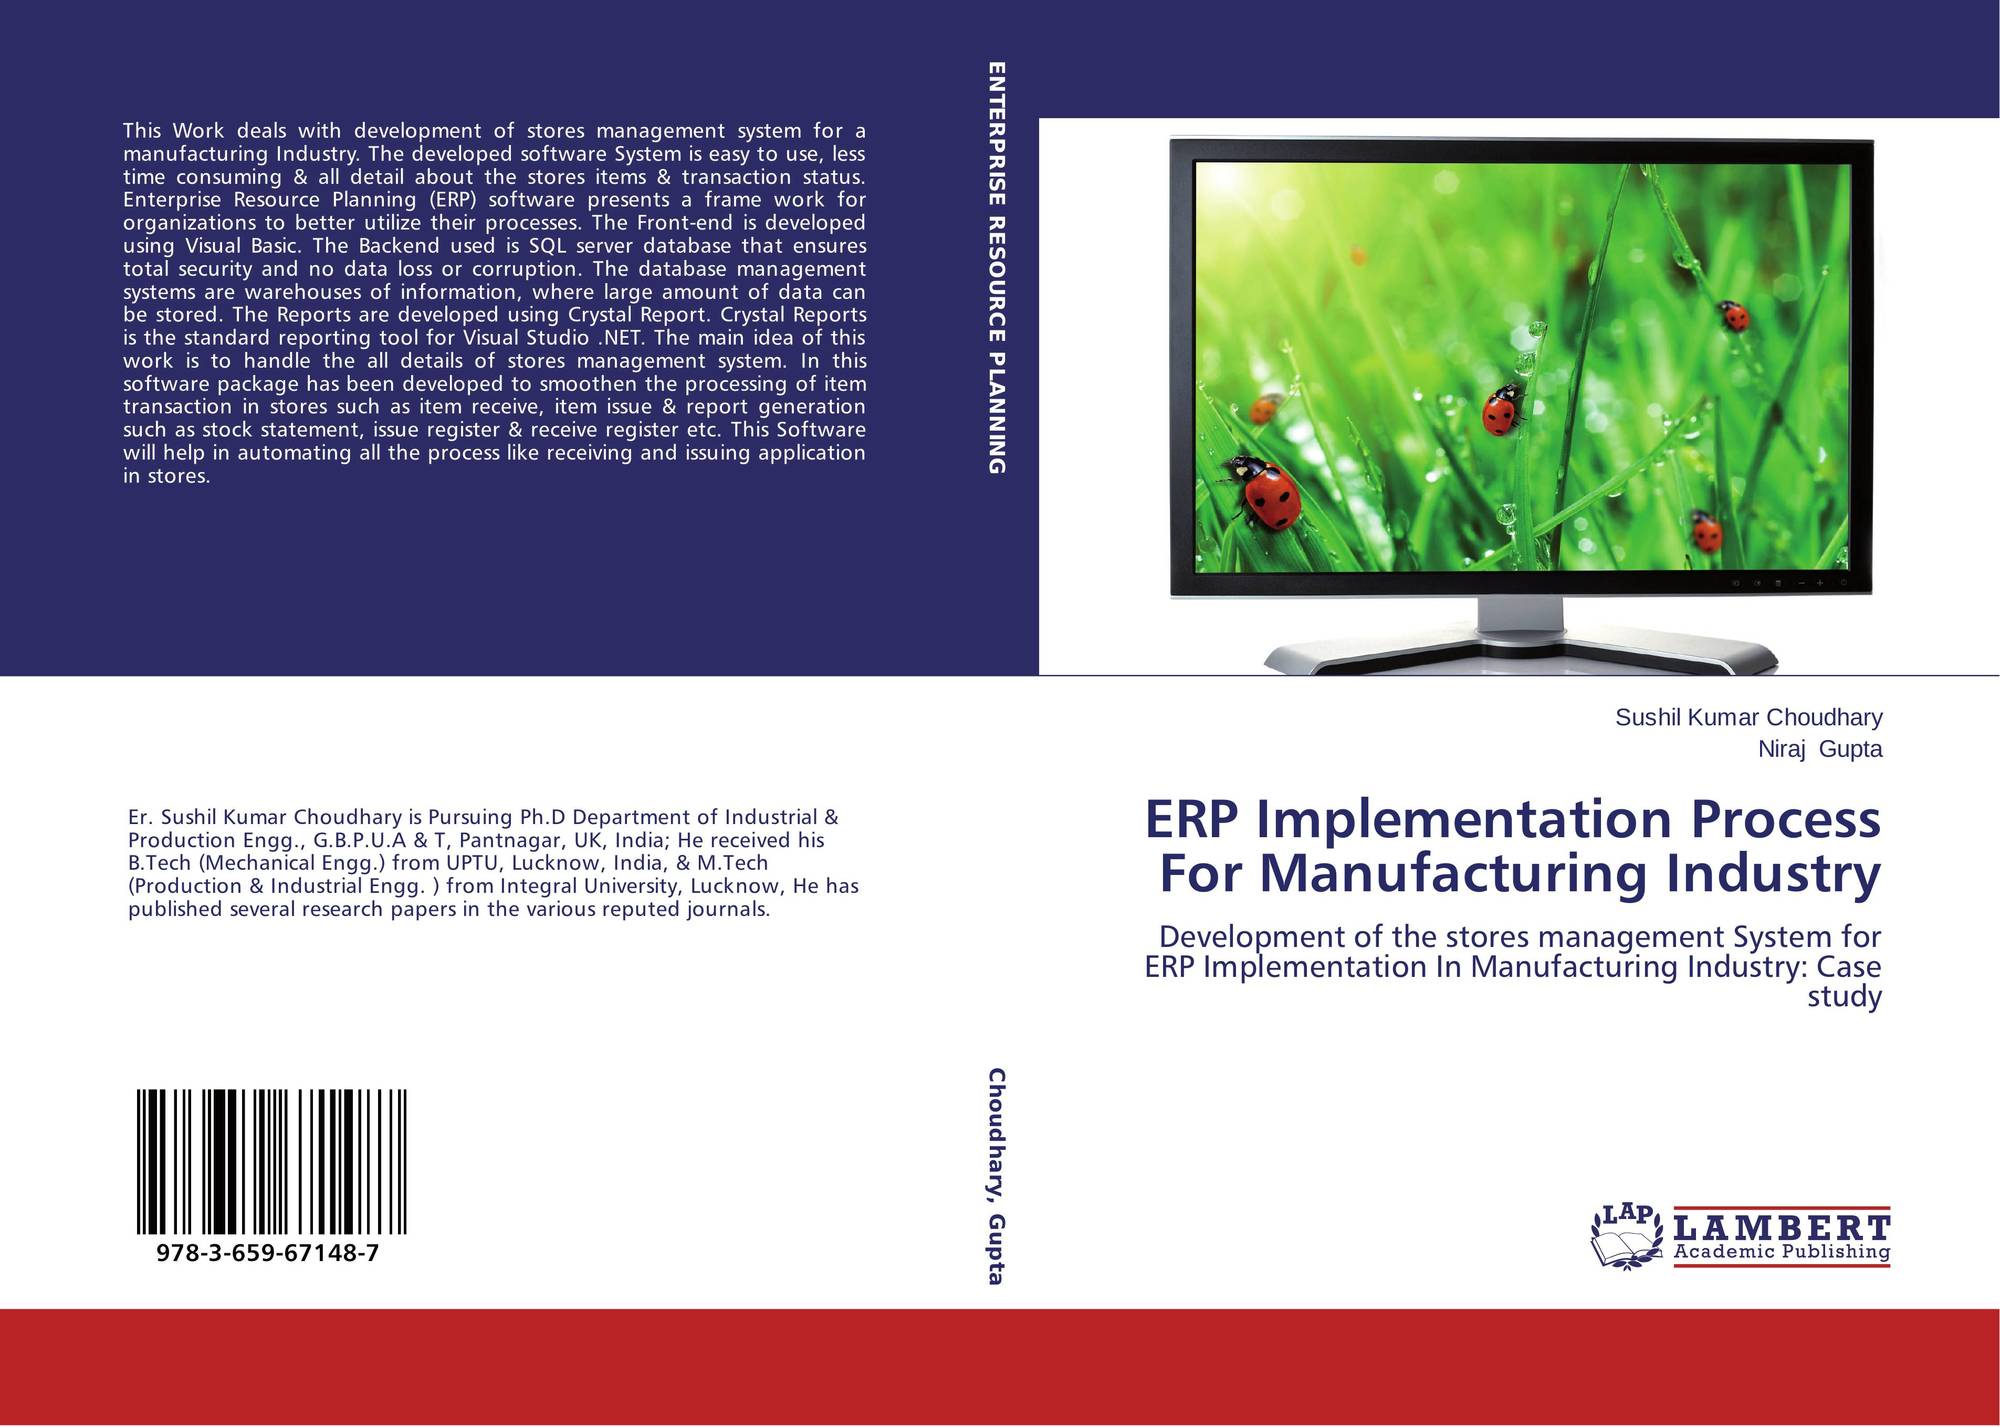 erp implementation case study manufacturing Erp implementation case studies-success & failures slideshare uses cookies to improve functionality and performance, and to provide you with relevant advertising if you continue browsing the site, you agree to the use of cookies on this website.